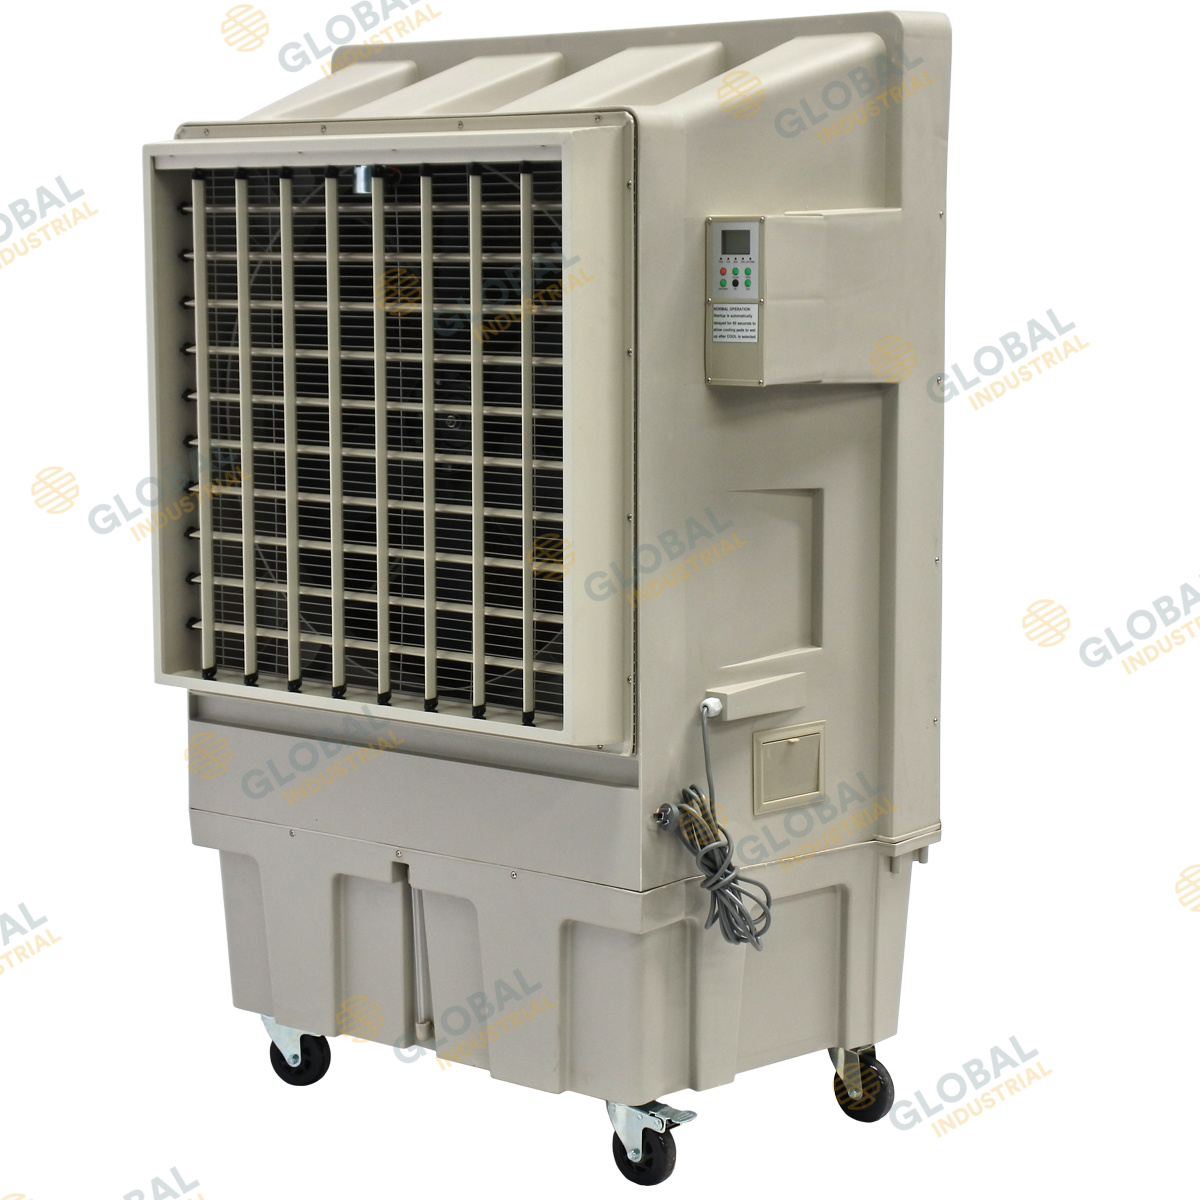 Air Cooler Units : Evaporative cooler portable air conditioner global ind